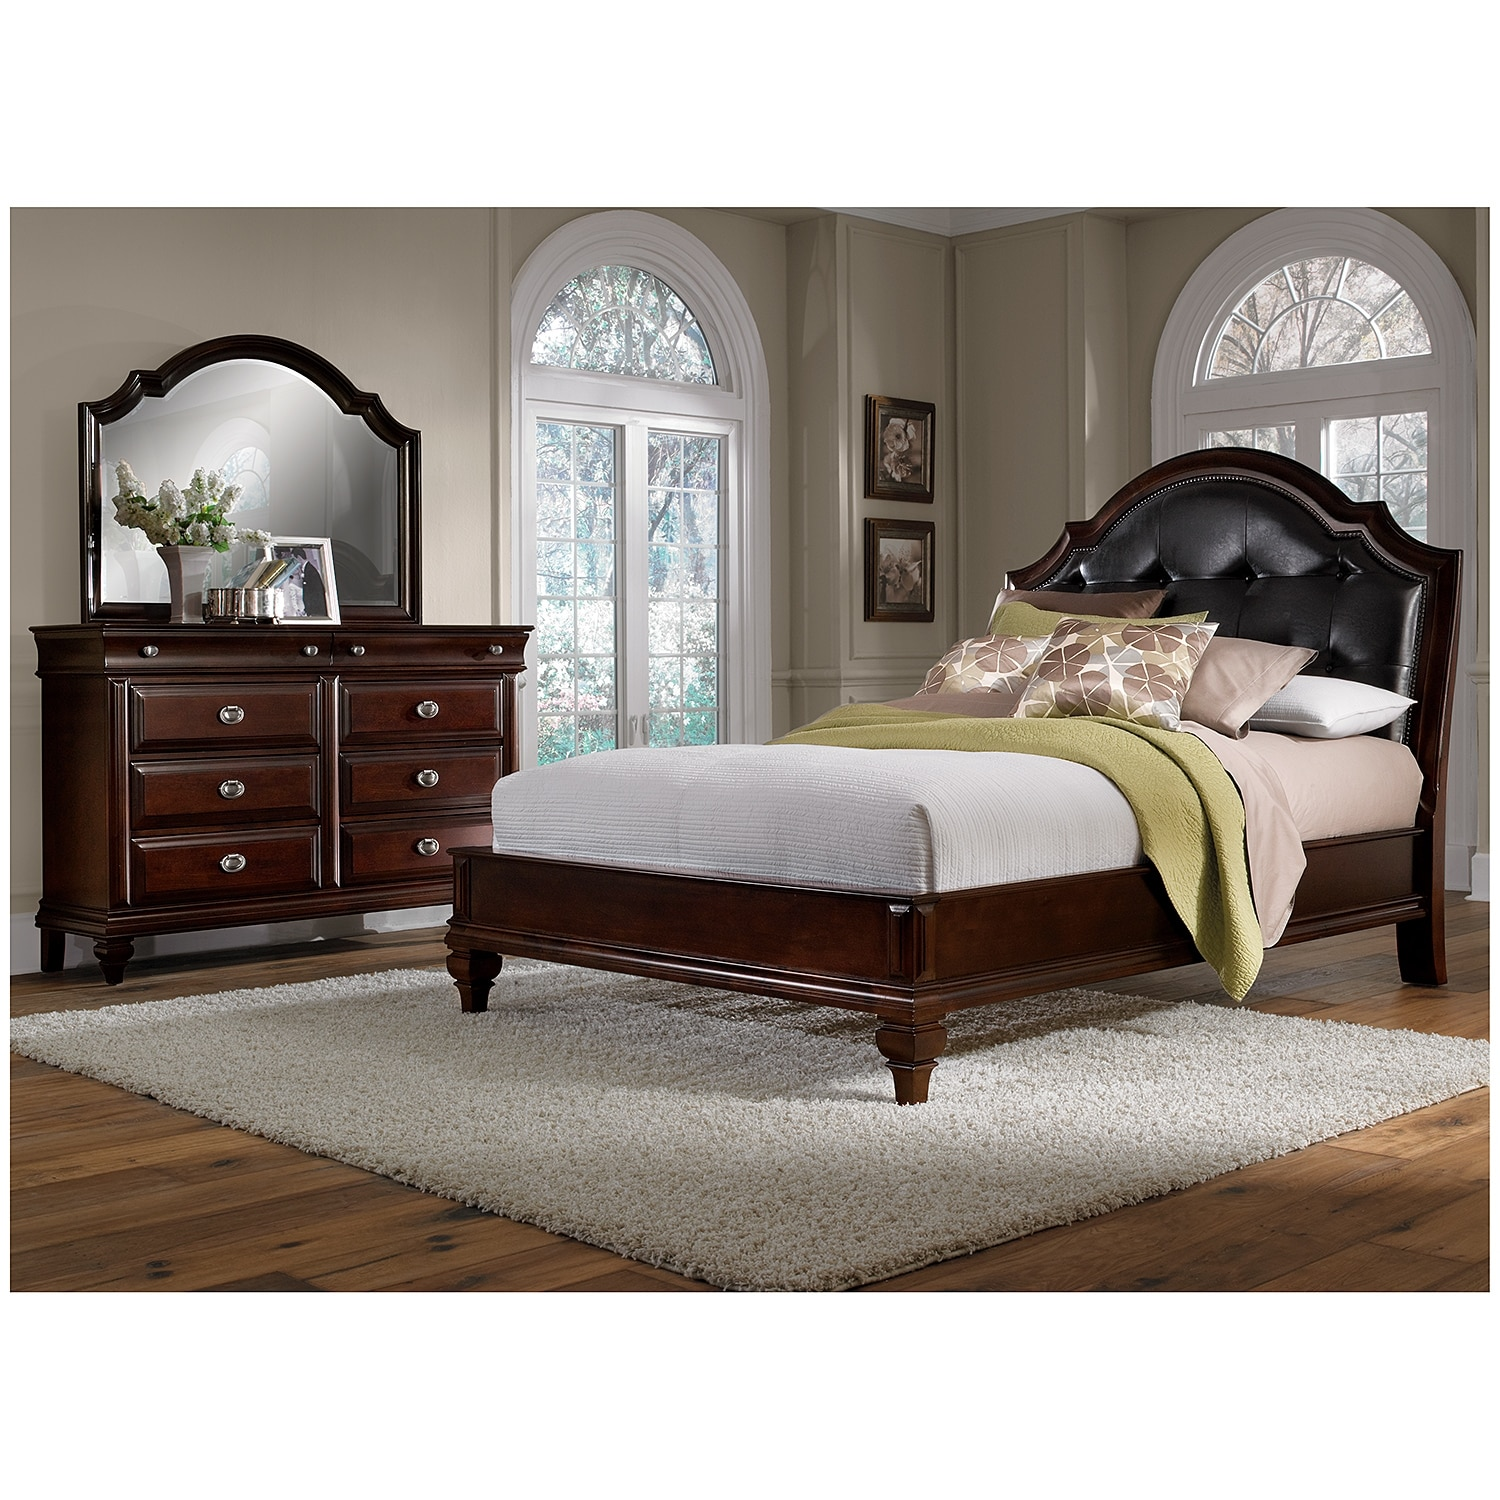 Best Upholstered Bedroom Set Painting